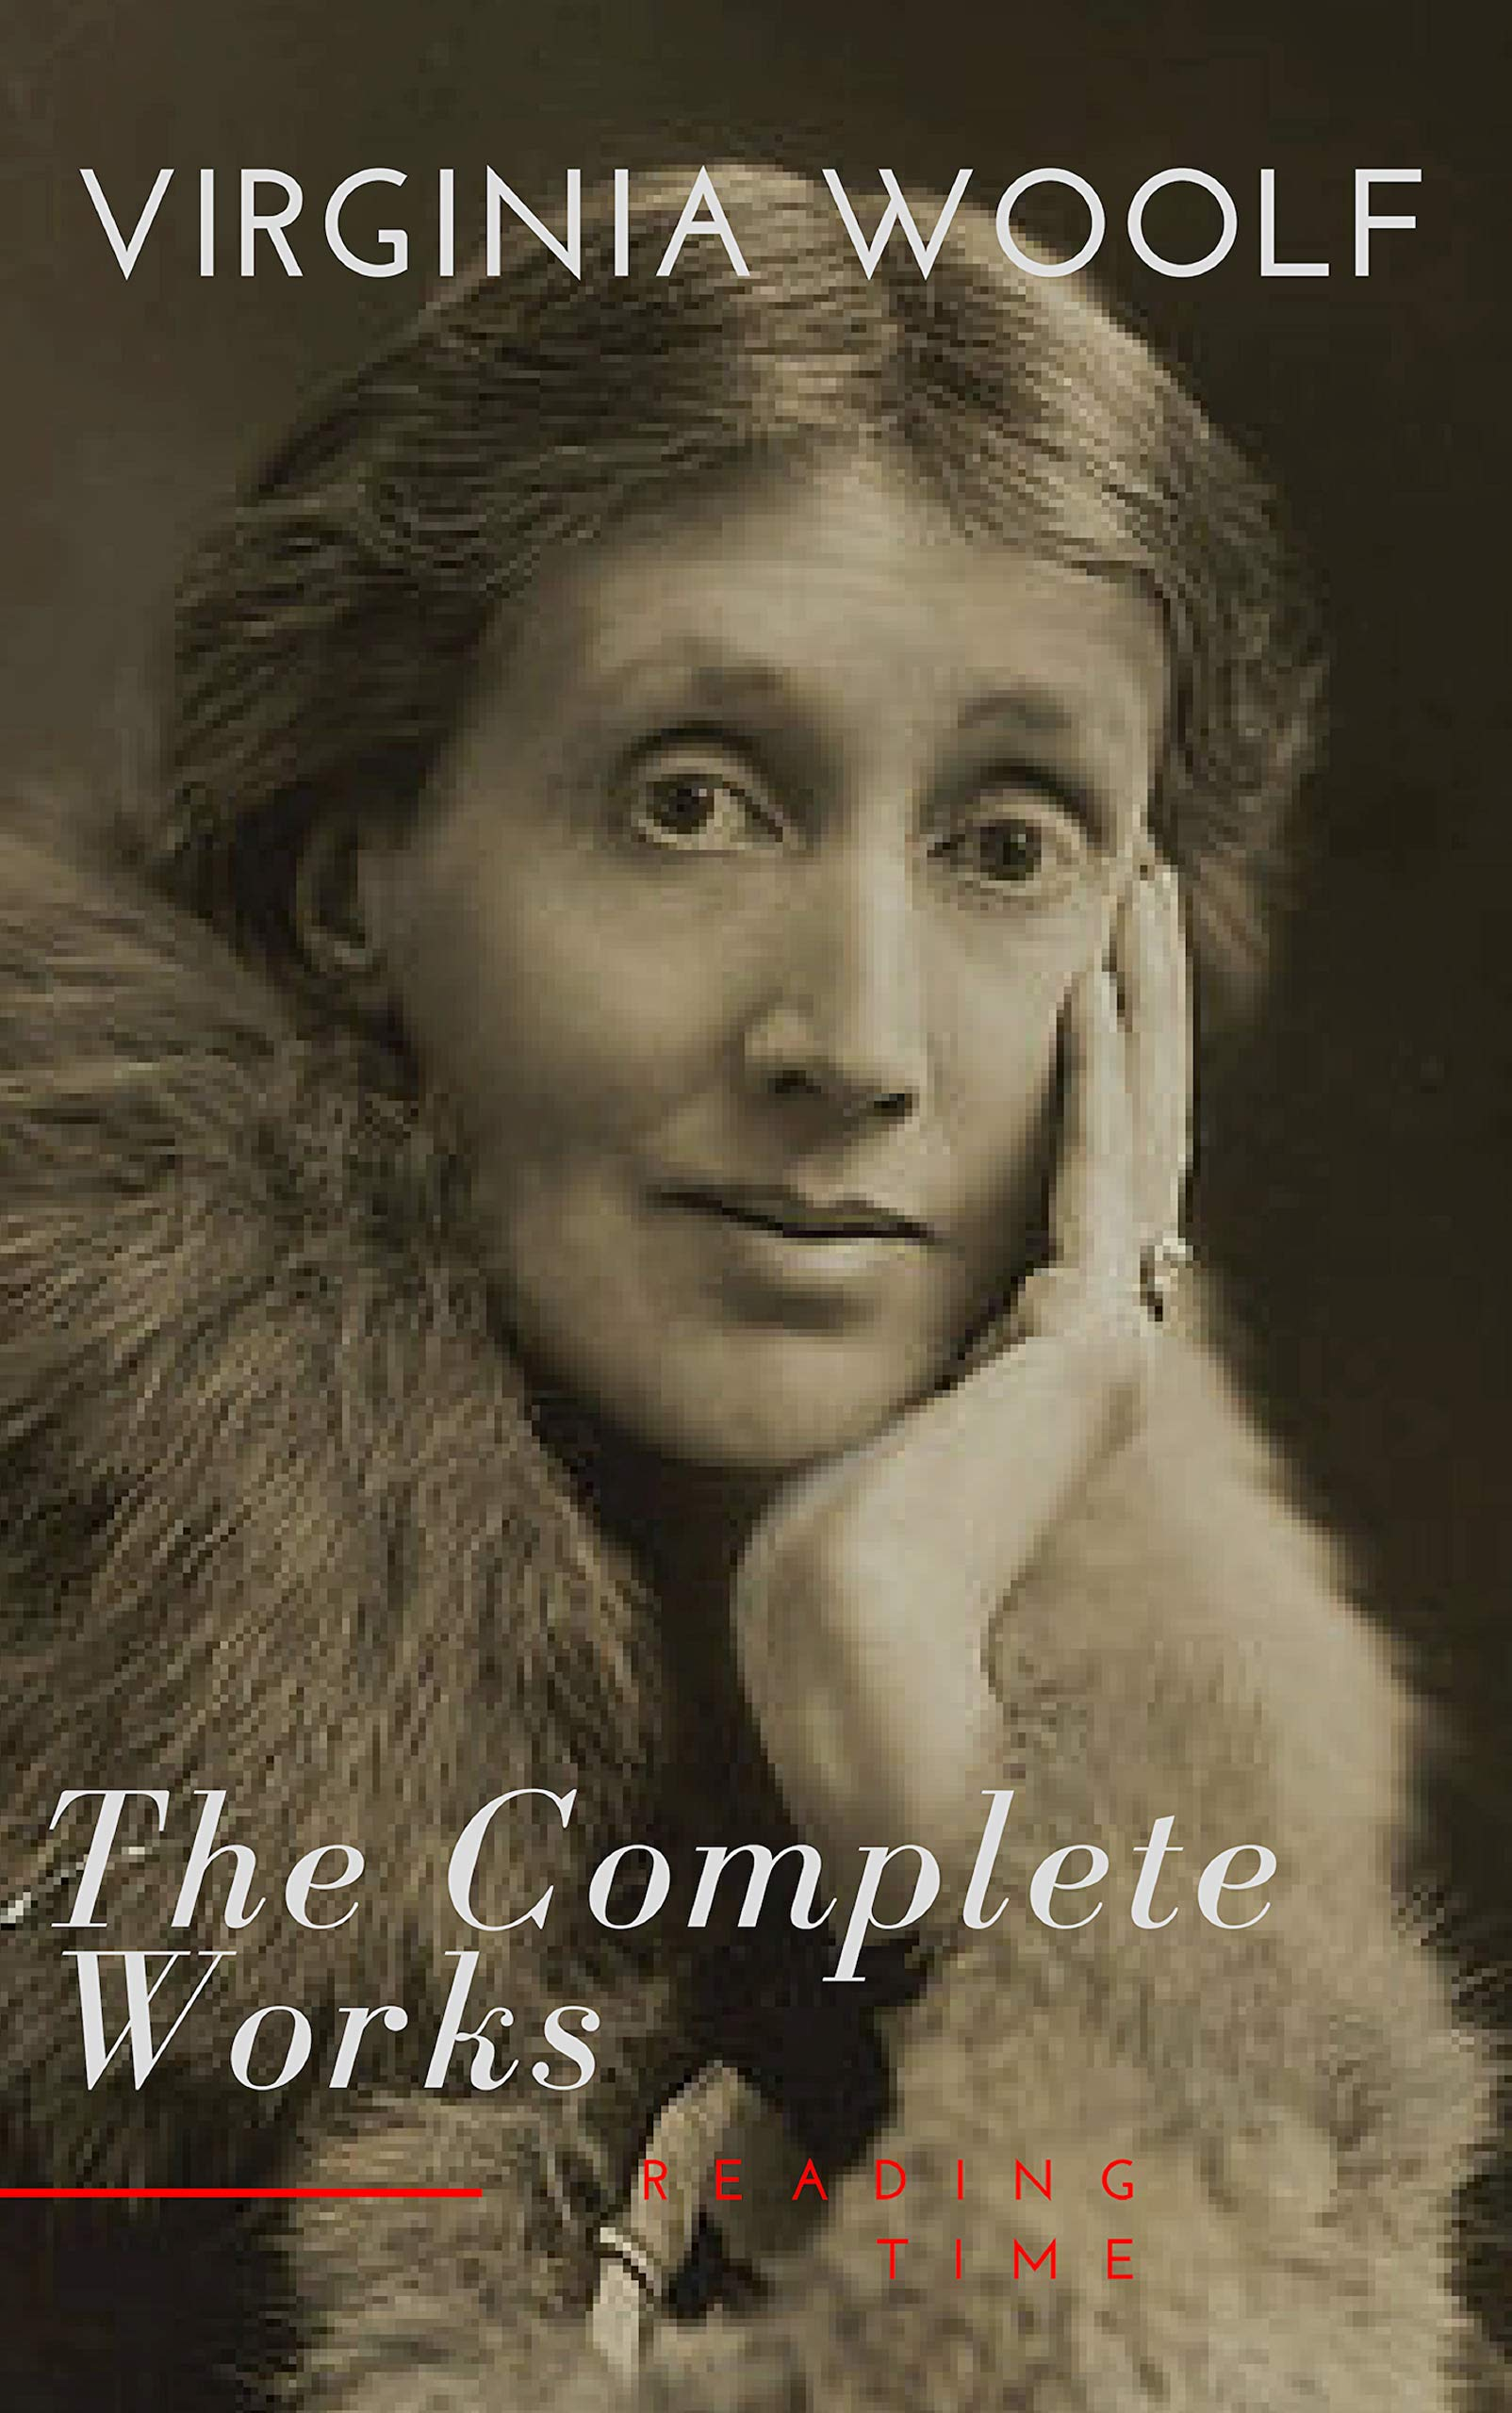 Virginia Woolf  The Complete Works  English Edition